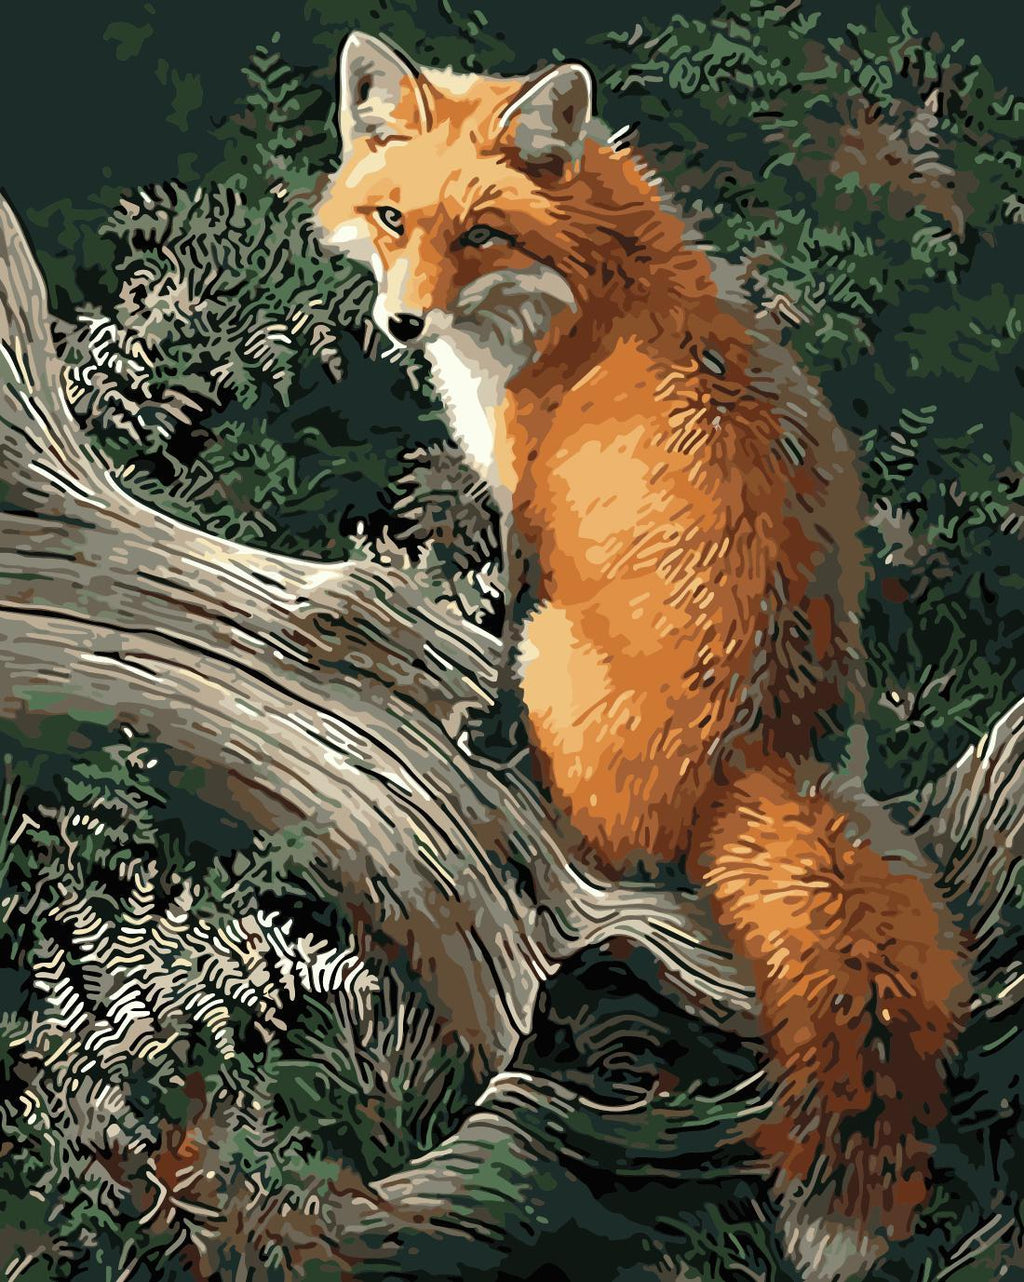 Animal Fox Paint By Numbers Kits UK For Adult HQD1247